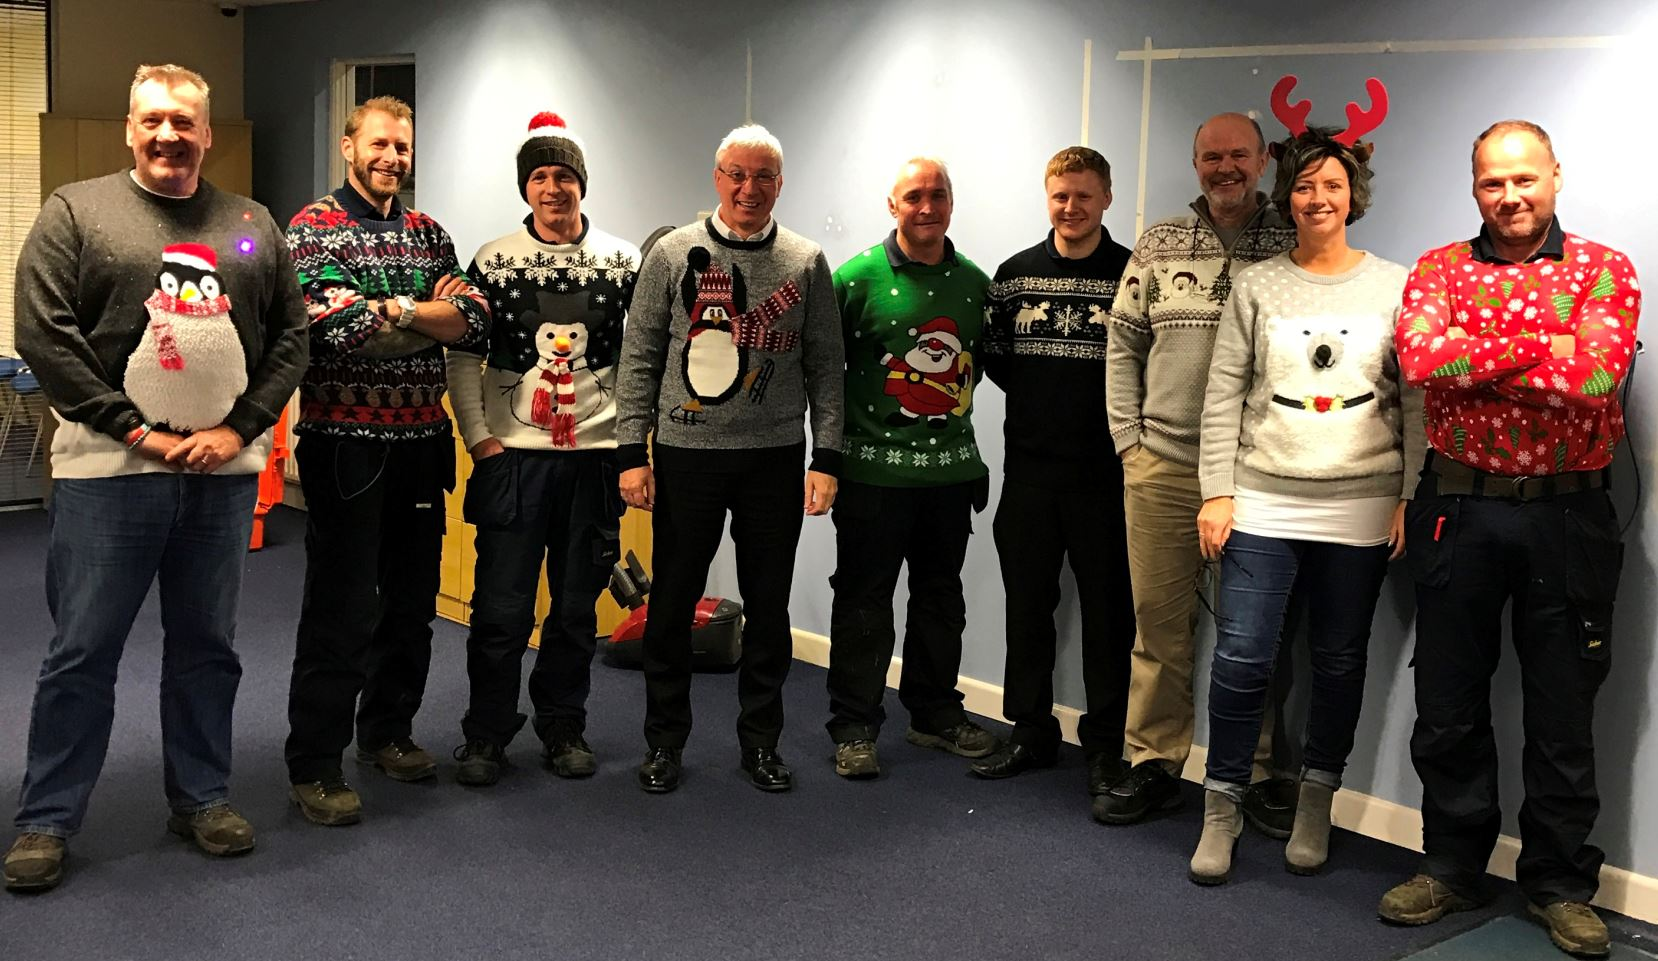 Staff Christmas Jumper picture